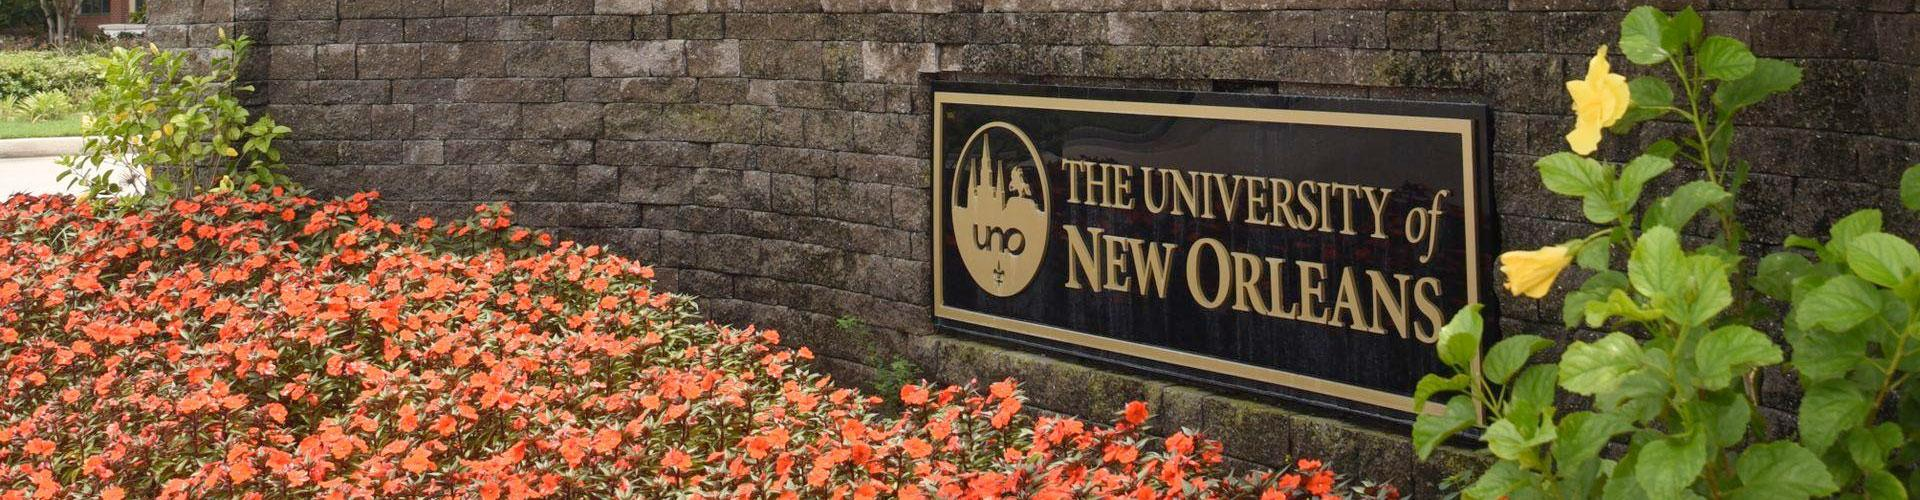 About University of New Orleans | The University of New Orleans